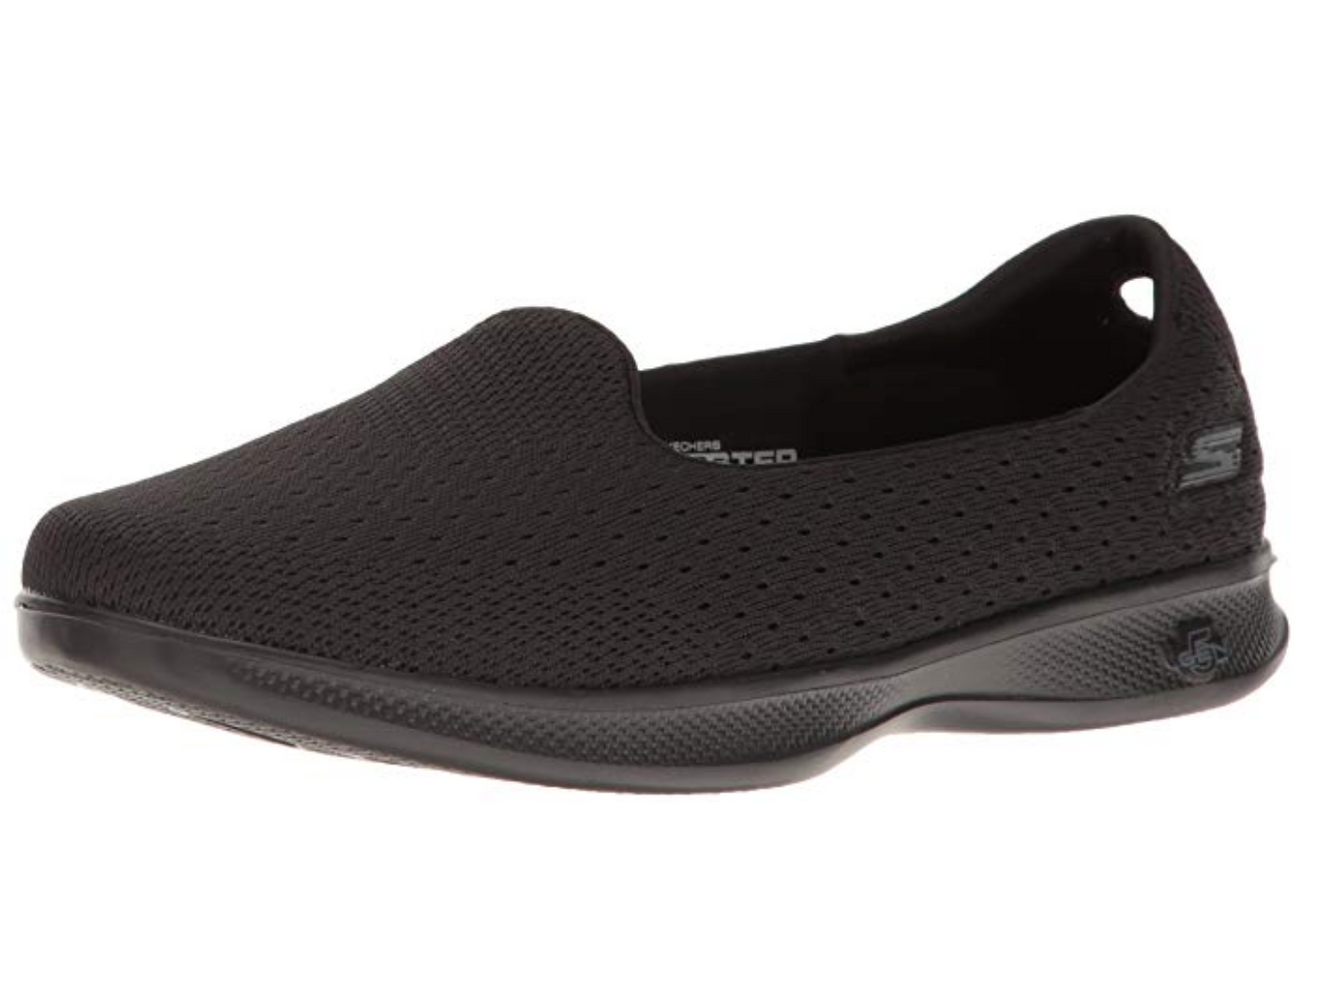 Skechers Performance Women's Go Step Lite Slip-on Walking Shoe